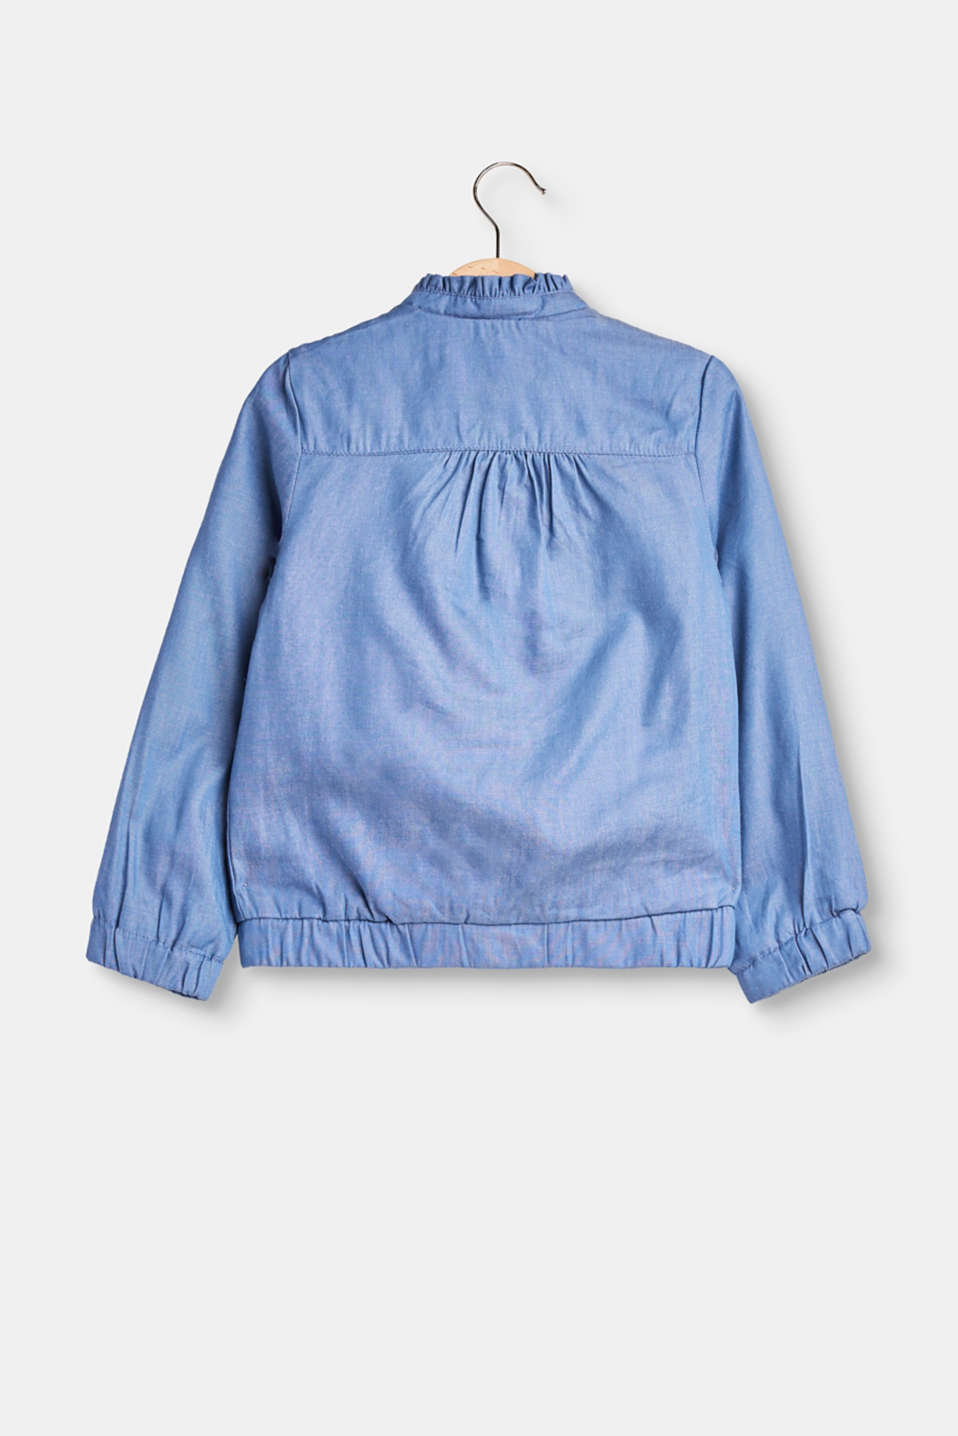 Bomber jacket made of soft chambray